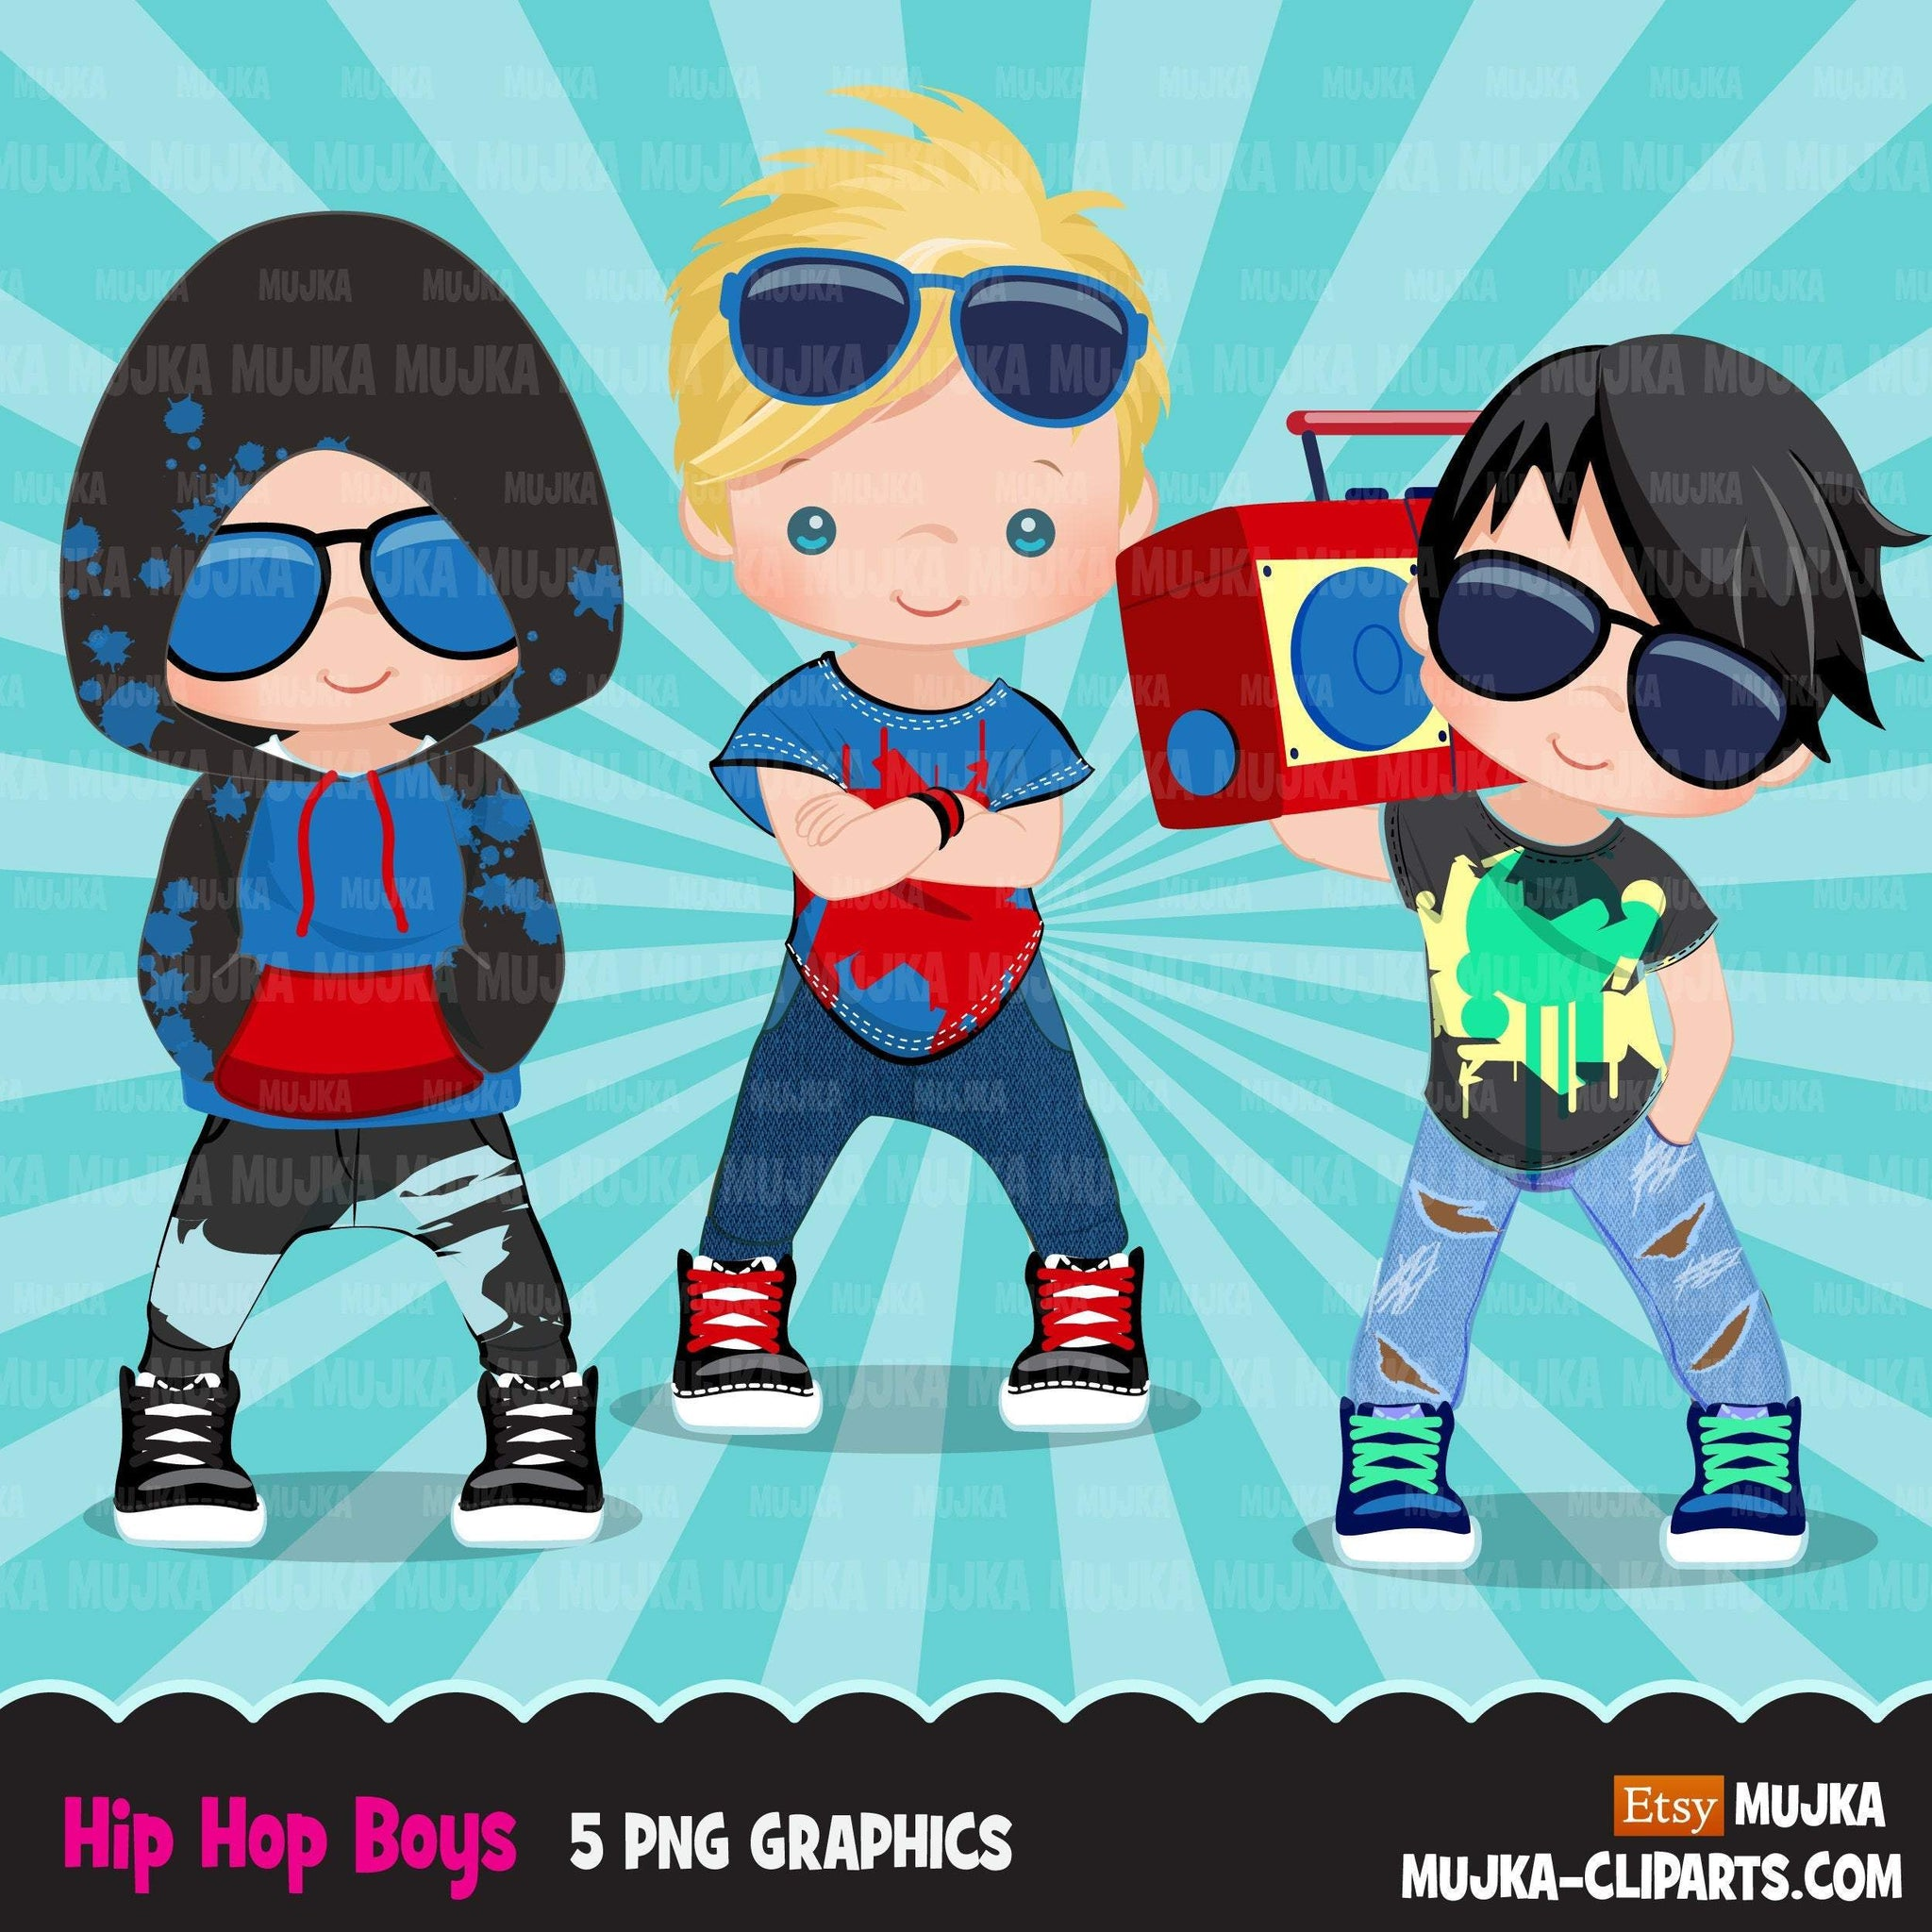 Hip hop dancer boys clipart, boombox, break dance, rapping characters, digital sublimation clip art